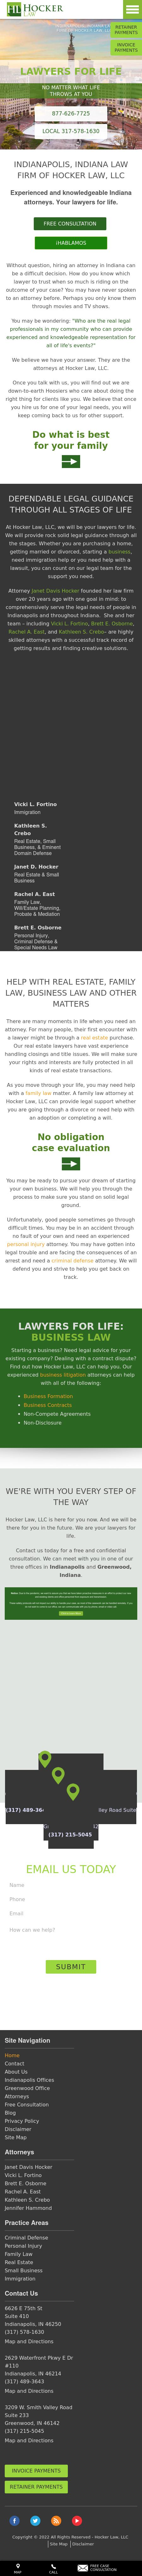 Hocker & Associates, LLC - Indianapolis IN Lawyers